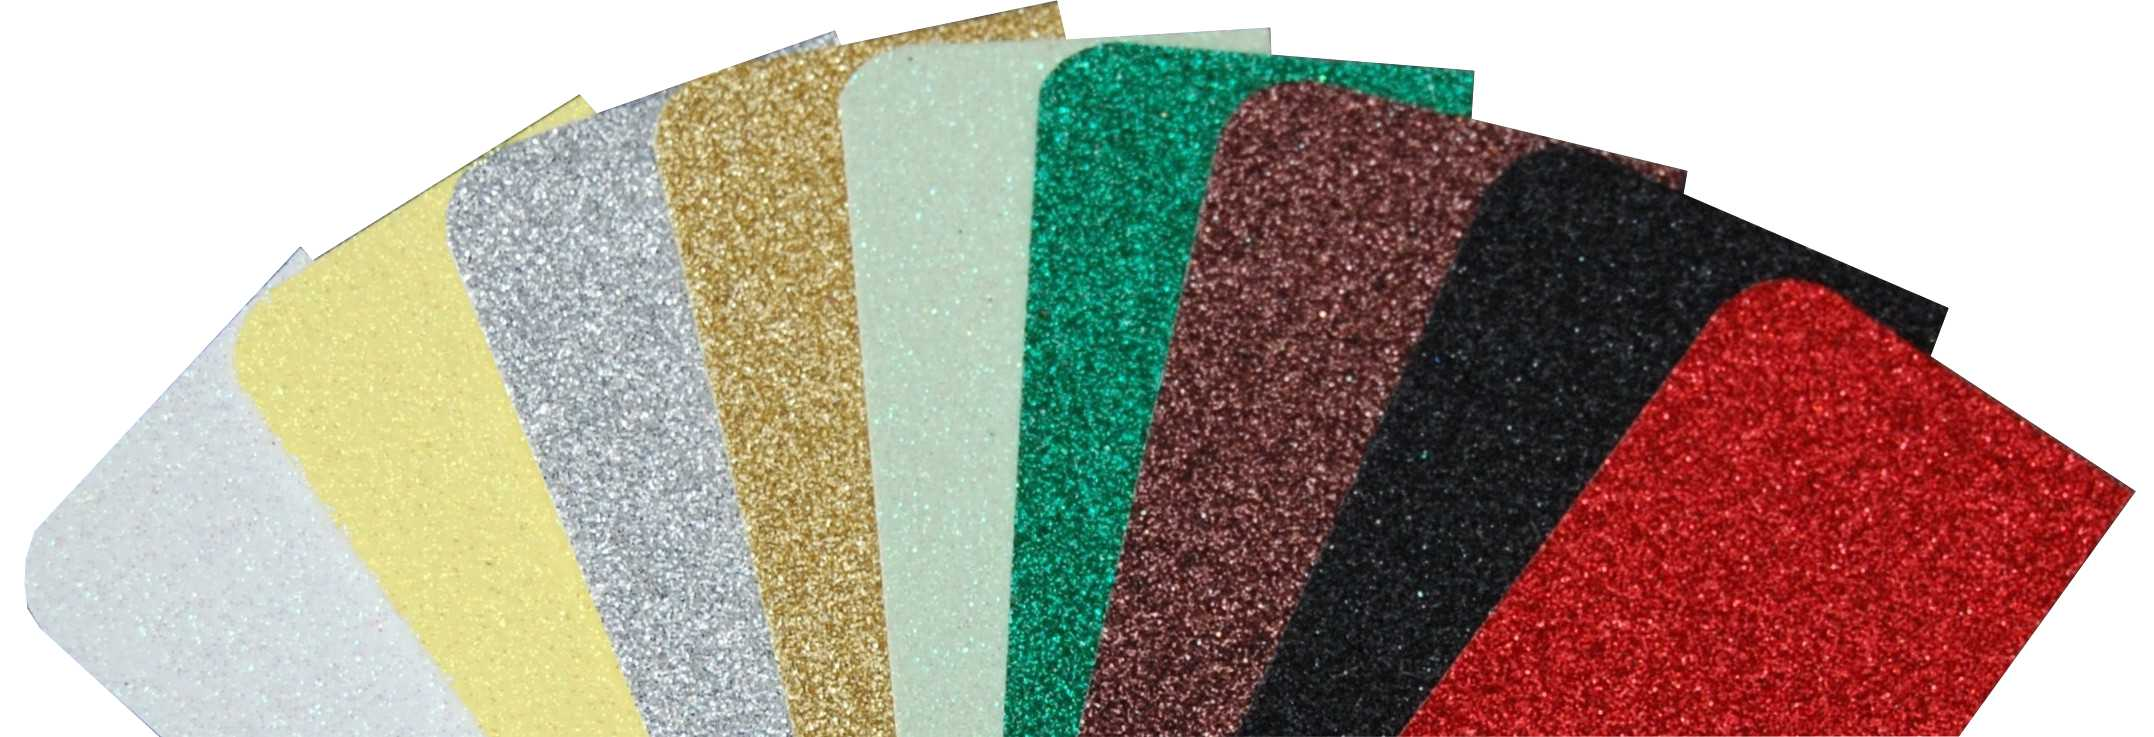 Glitter colour options